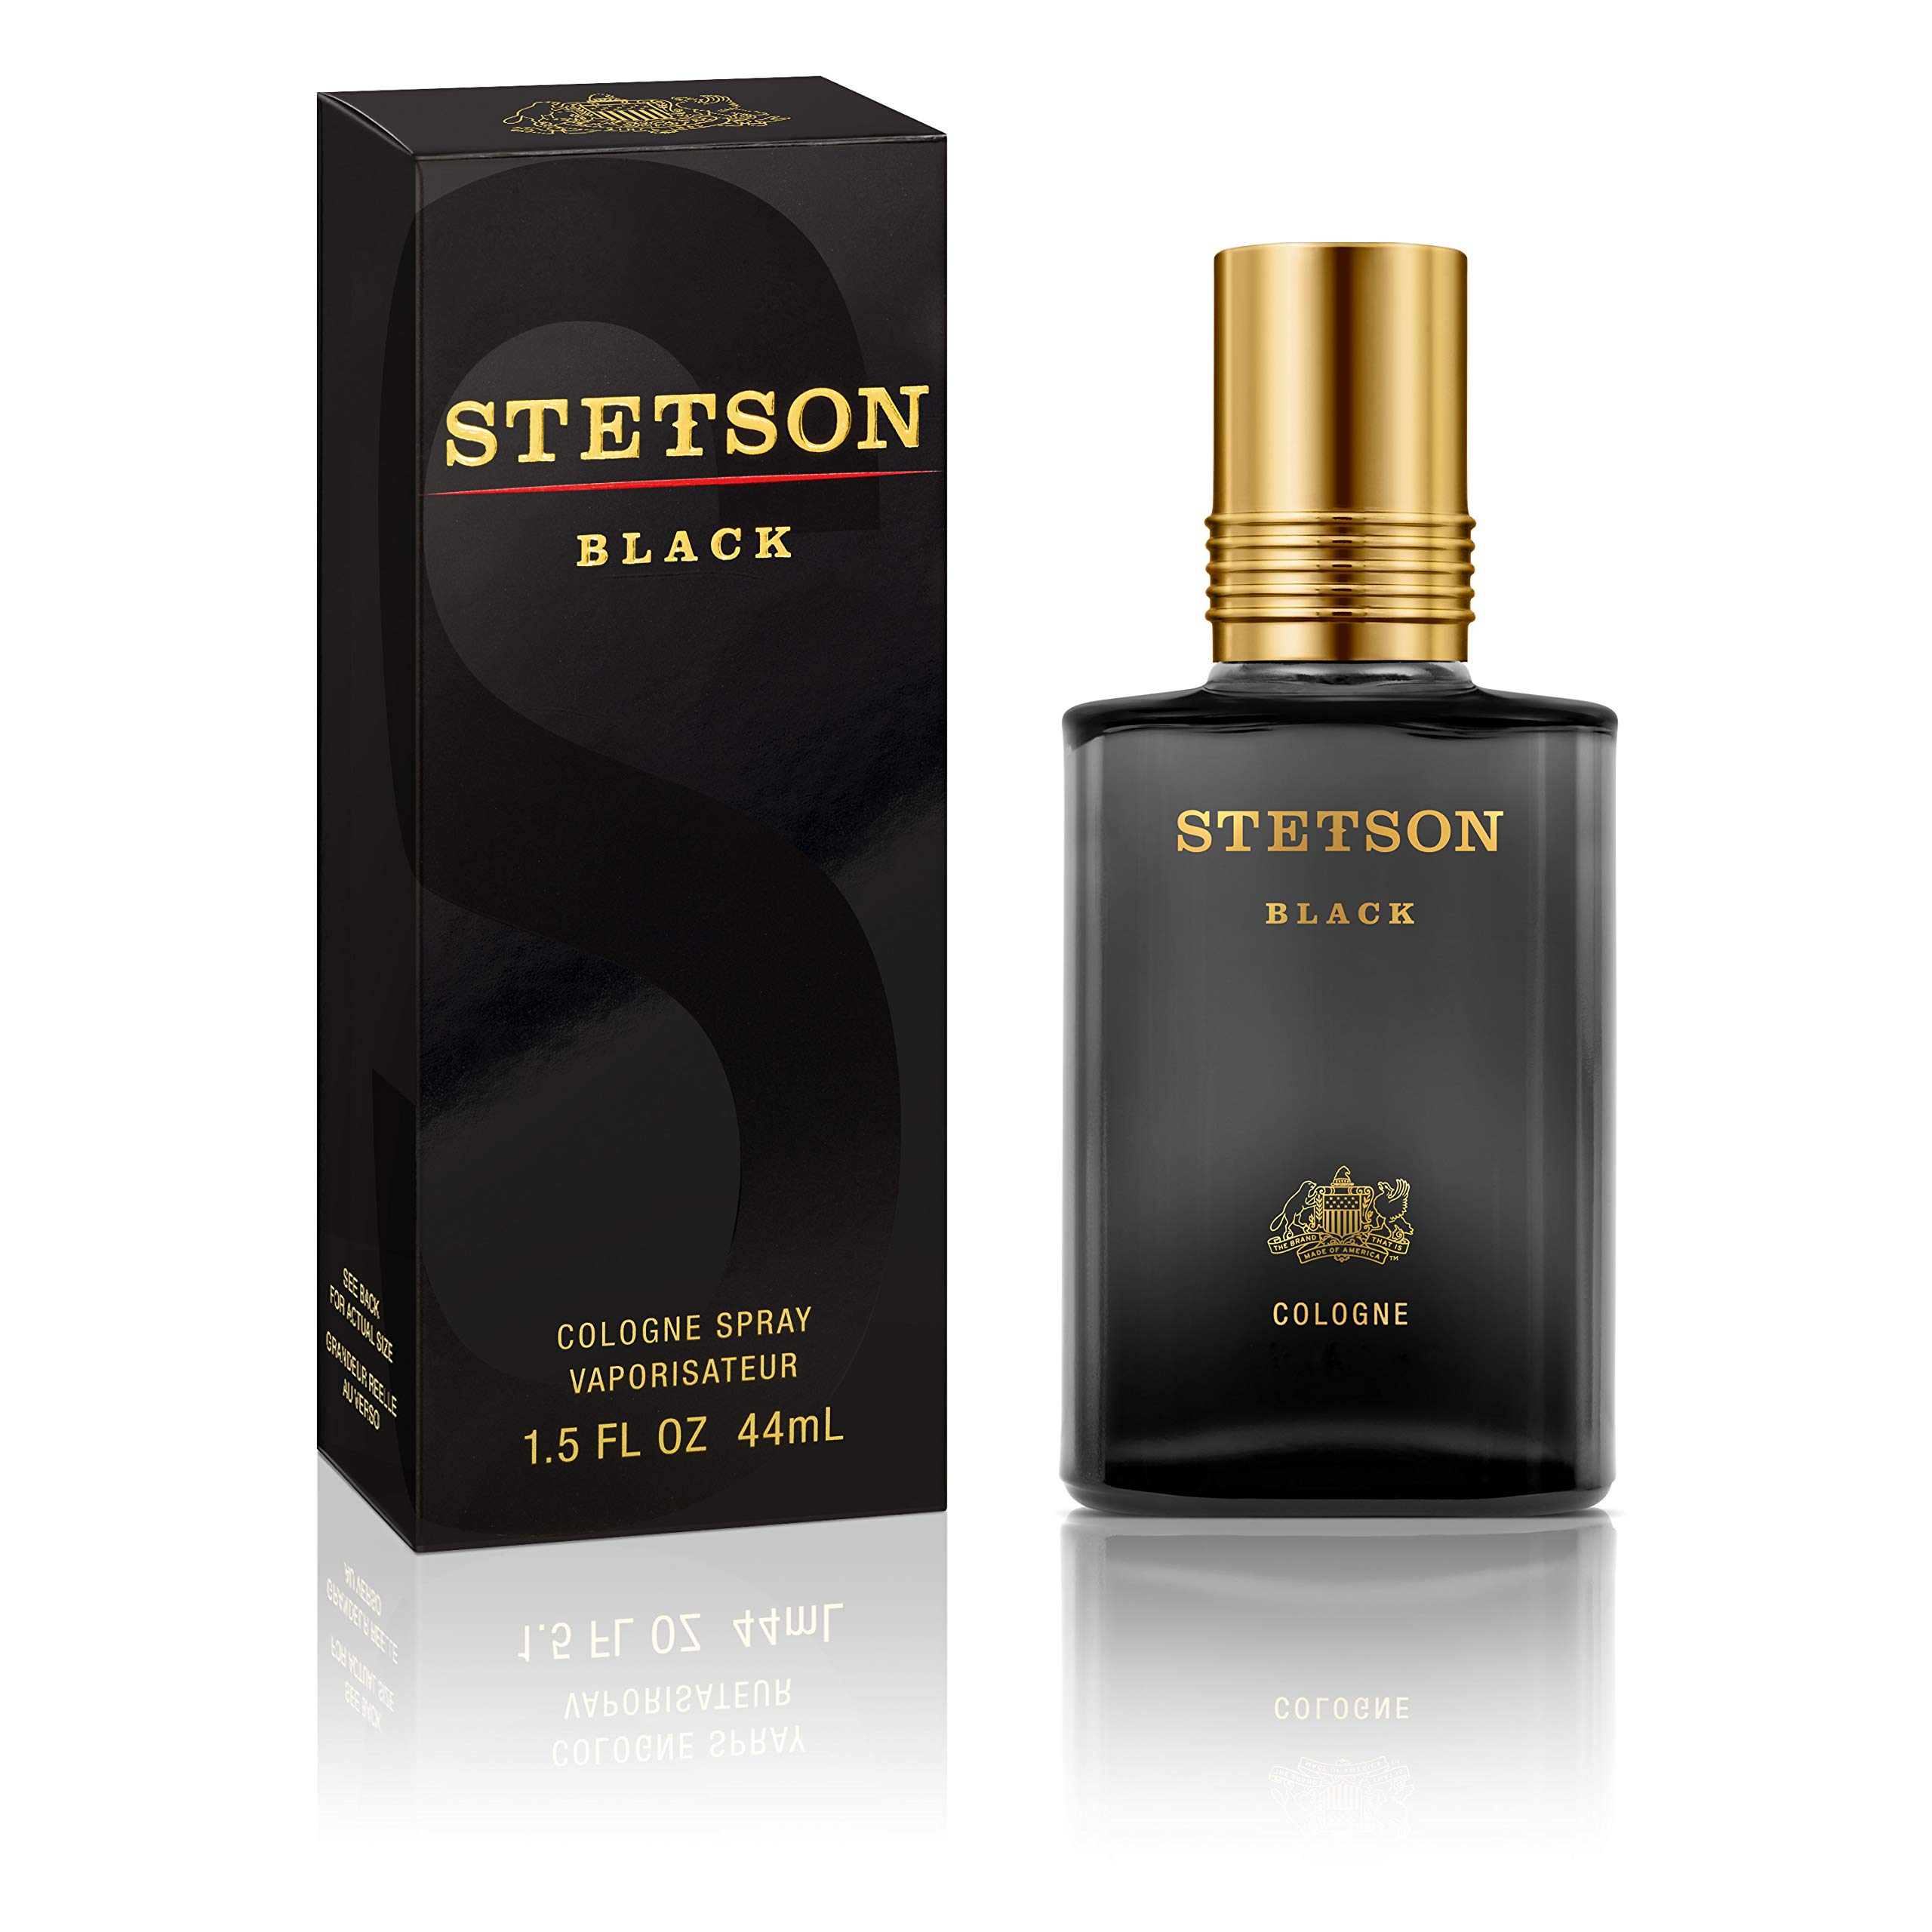 Stetson Black Cologne Spray for Men by Stetson 1.5 Fluid Ounce Spray Bottle  A Uniquely Bold Blend of Warm Spices and Fresh Woods